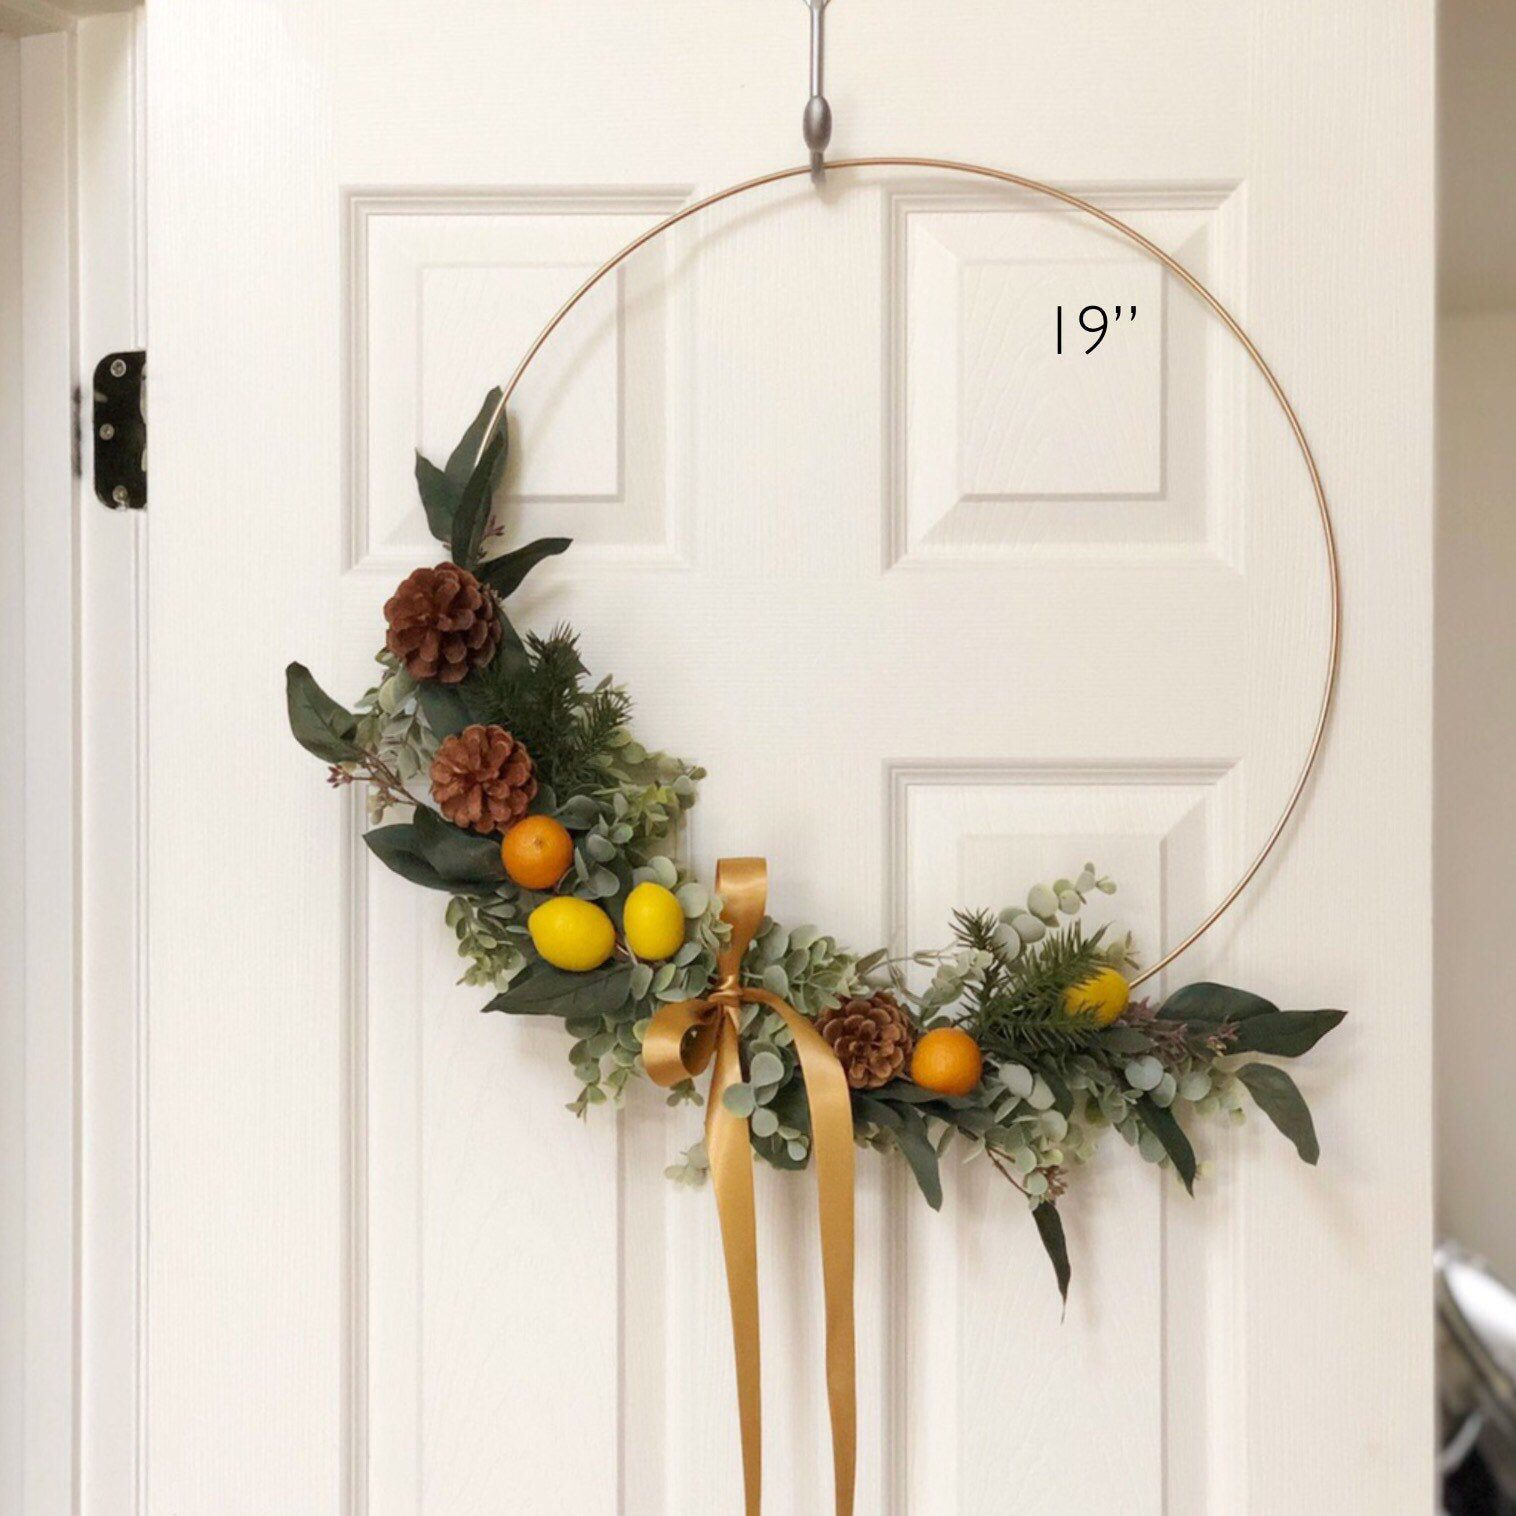 """Photo of 19 """"Autumn modern tire wreath – large tire wreath with artificial citrus fruits – tire wreath, artificial eucalyptus wreath, modern wreath with lemons"""